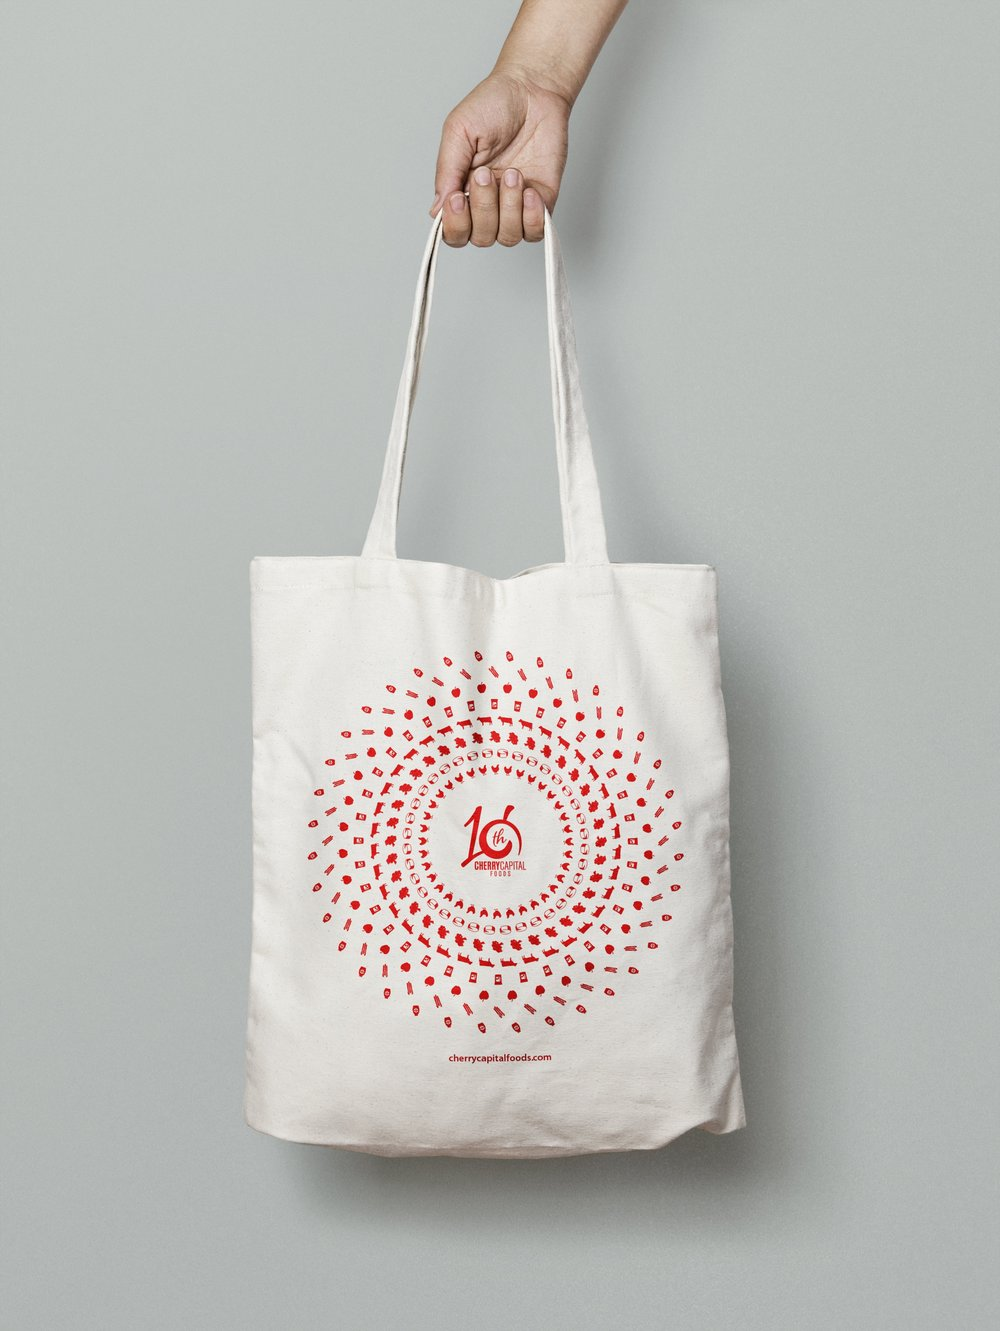 CCF_10th_canvas_tote.jpg